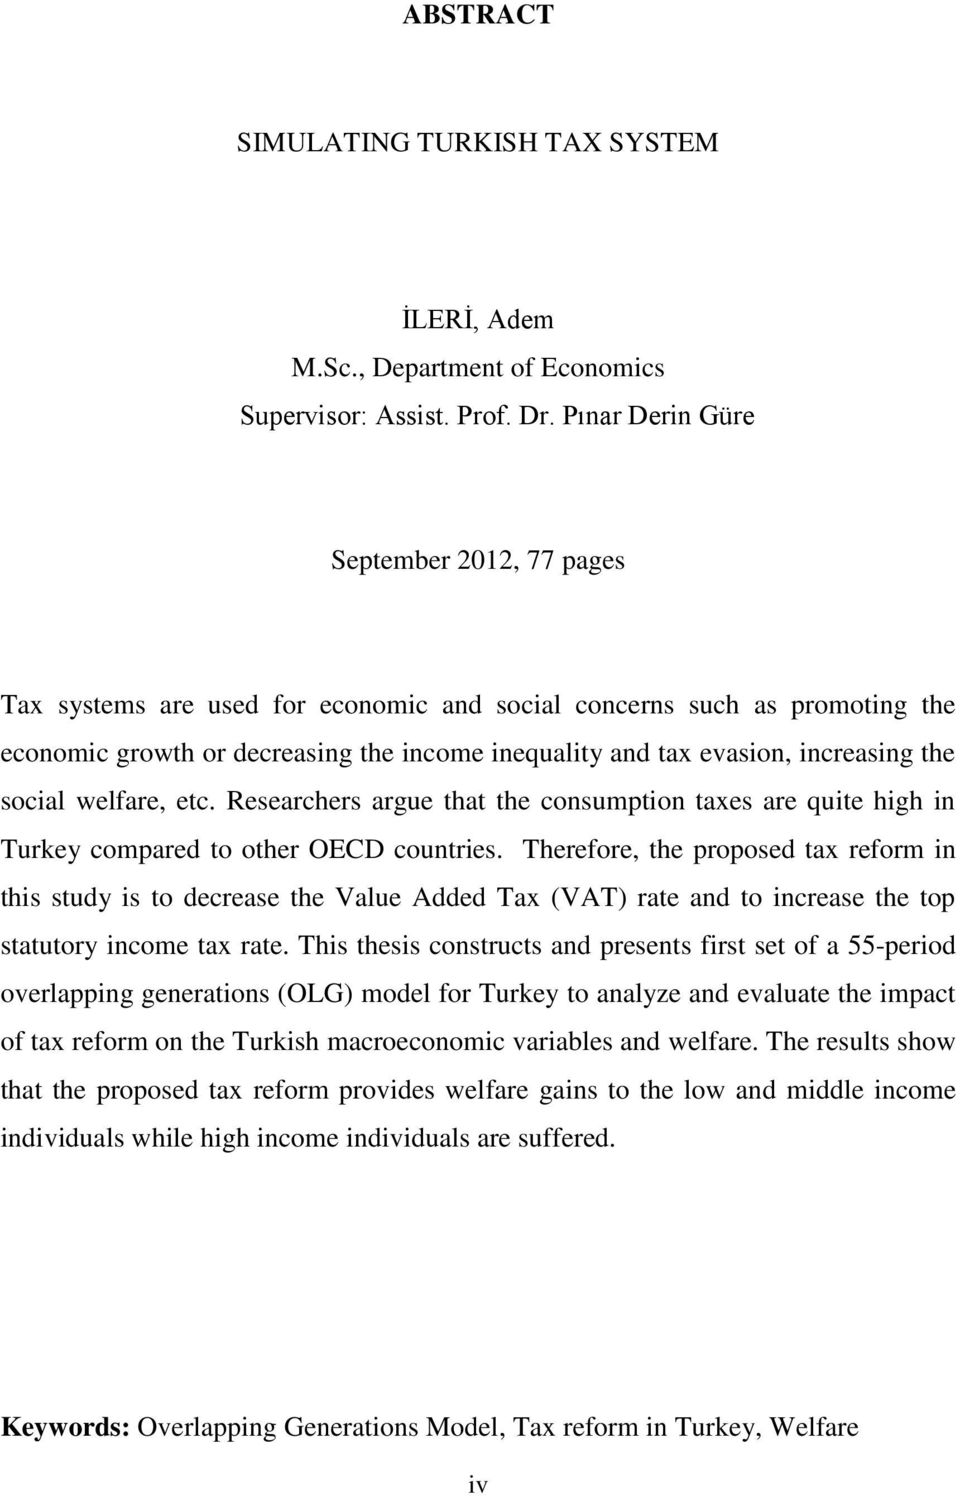 the social welfare, etc. Researchers argue that the consumption taxes are quite high in Turkey compared to other OECD countries.